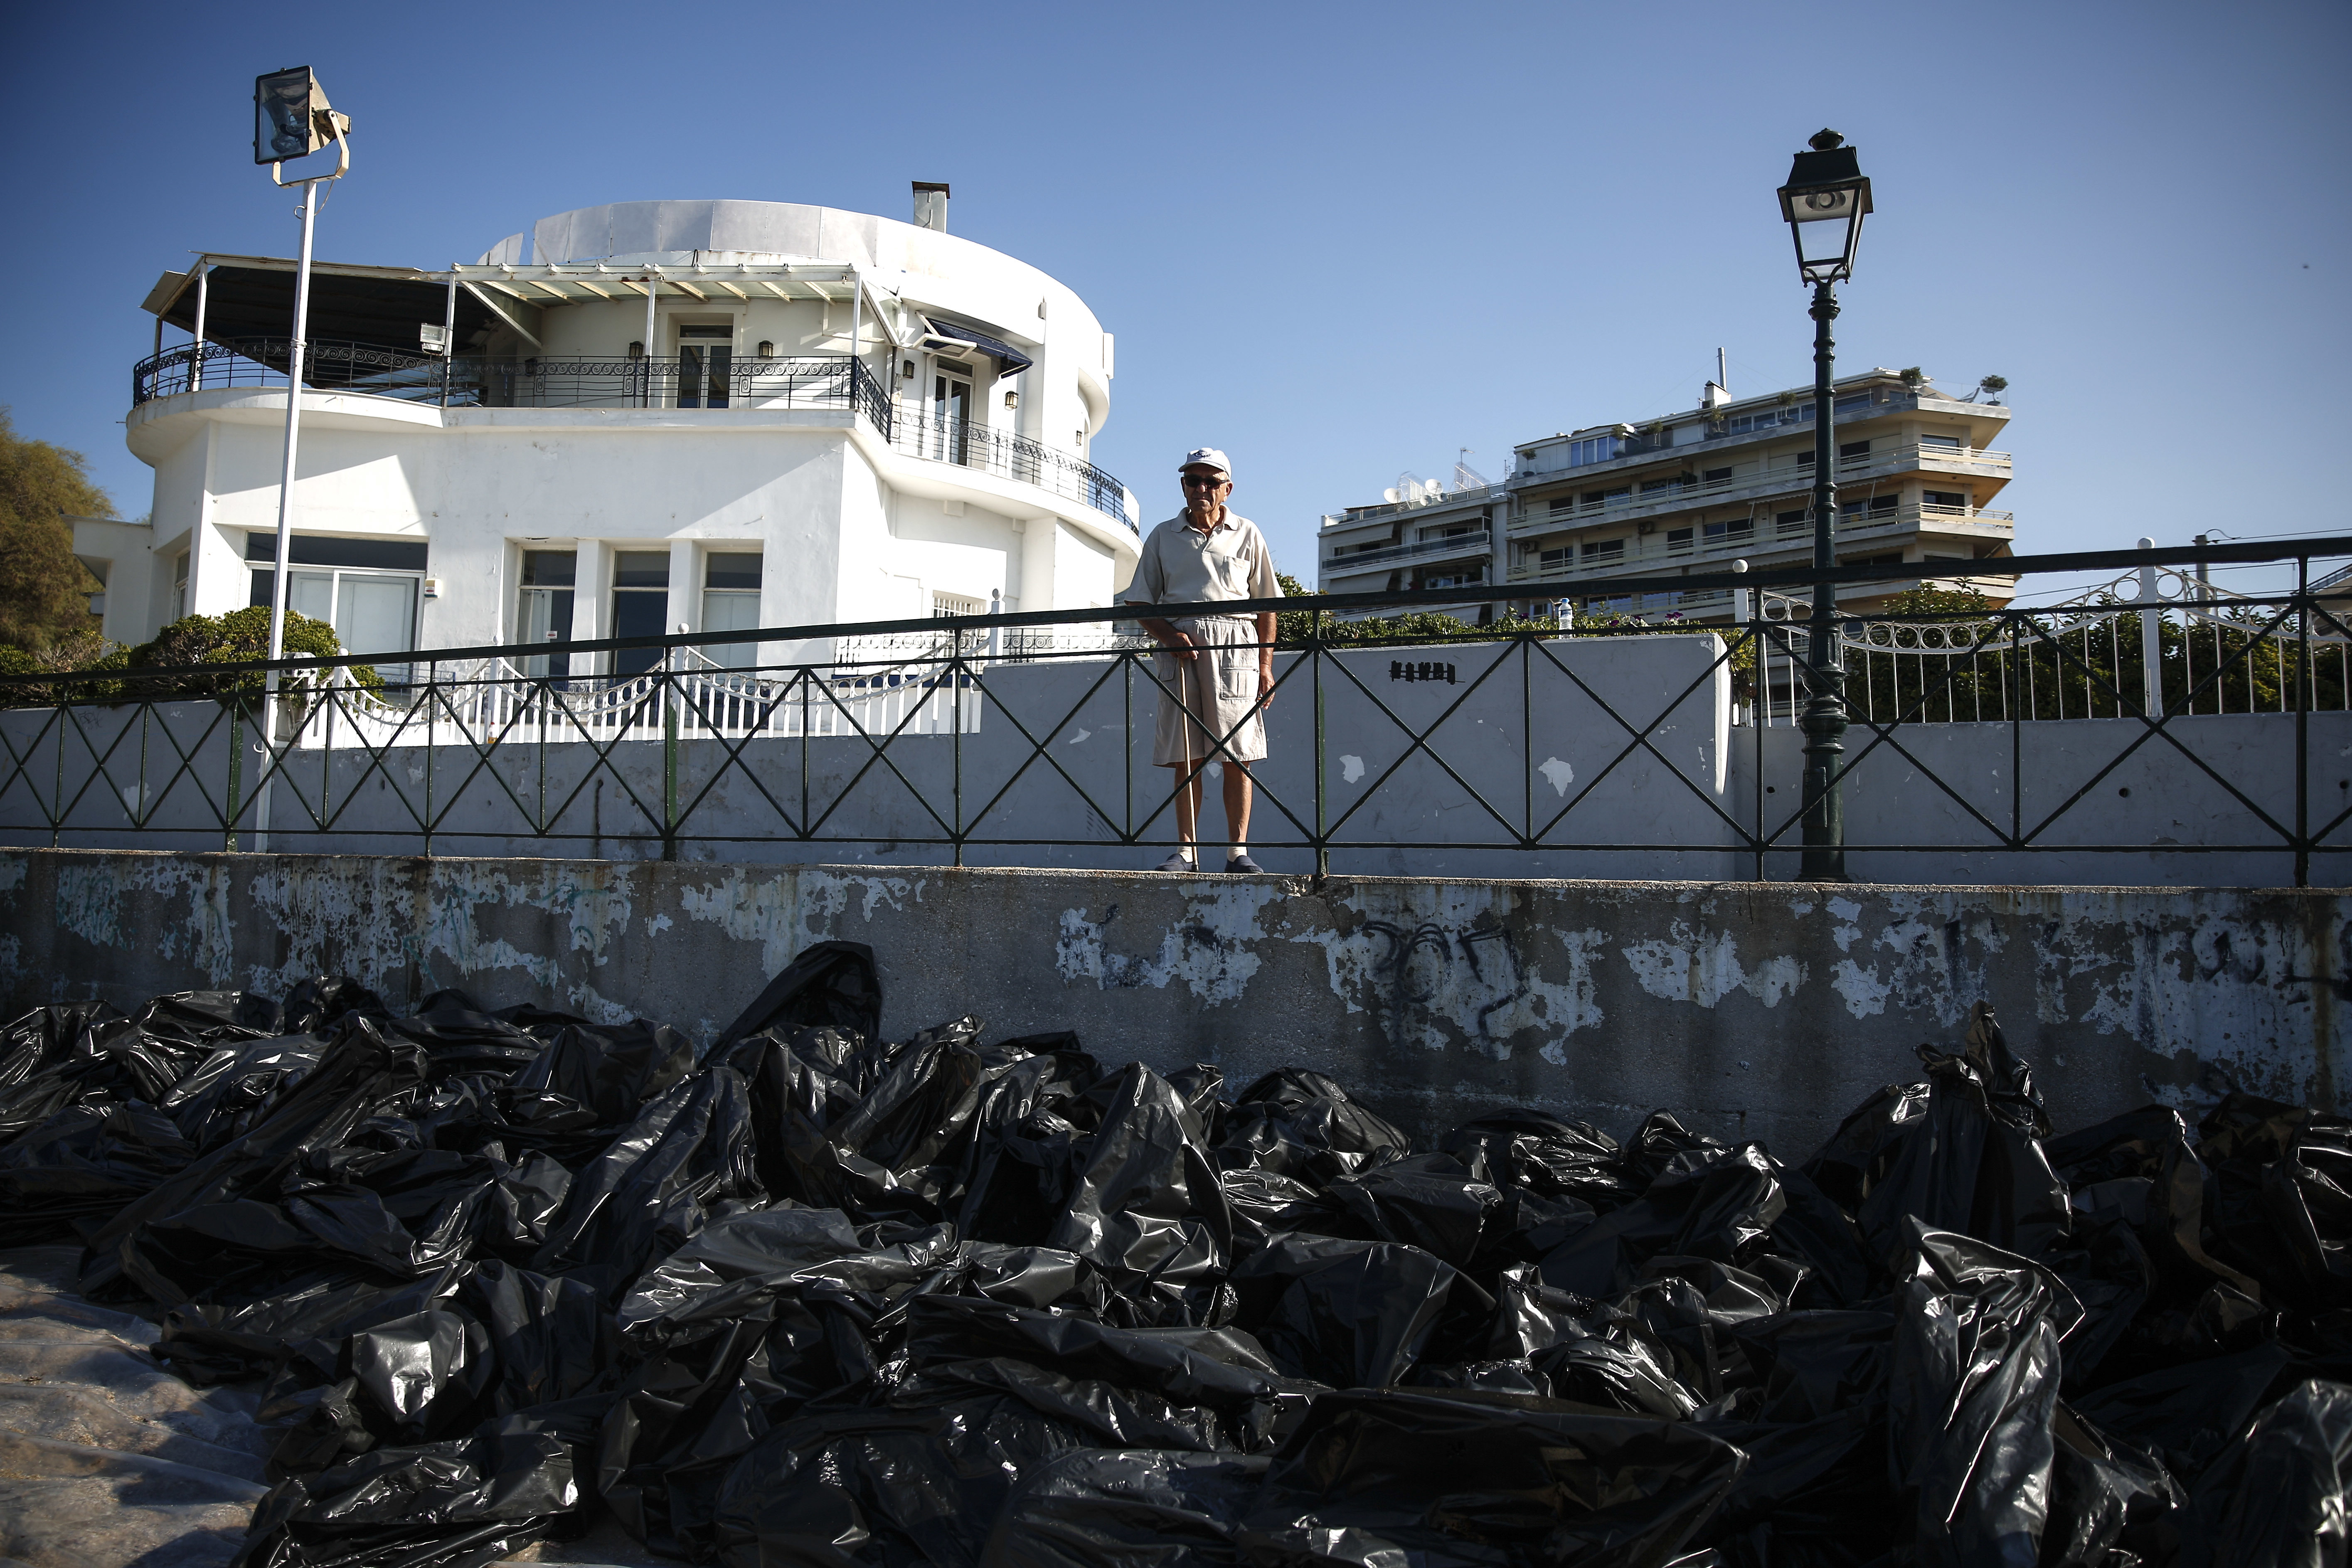 Greece Oli Spill-3 A man stands over garbage bags at a beach where workers clean an oil spillage at Faliro suburb, near Athens, on Thursday,Sept. 14, 2017. Greek authorities insist they are doing everything they can to clean up pollution caused by an oil spill following the sinking of a small oil tanker that has left large sections of the Greek capital's coastal areas coated in viscous, foul-smelling oil. (AP Photo/Yorgos Karahalis)